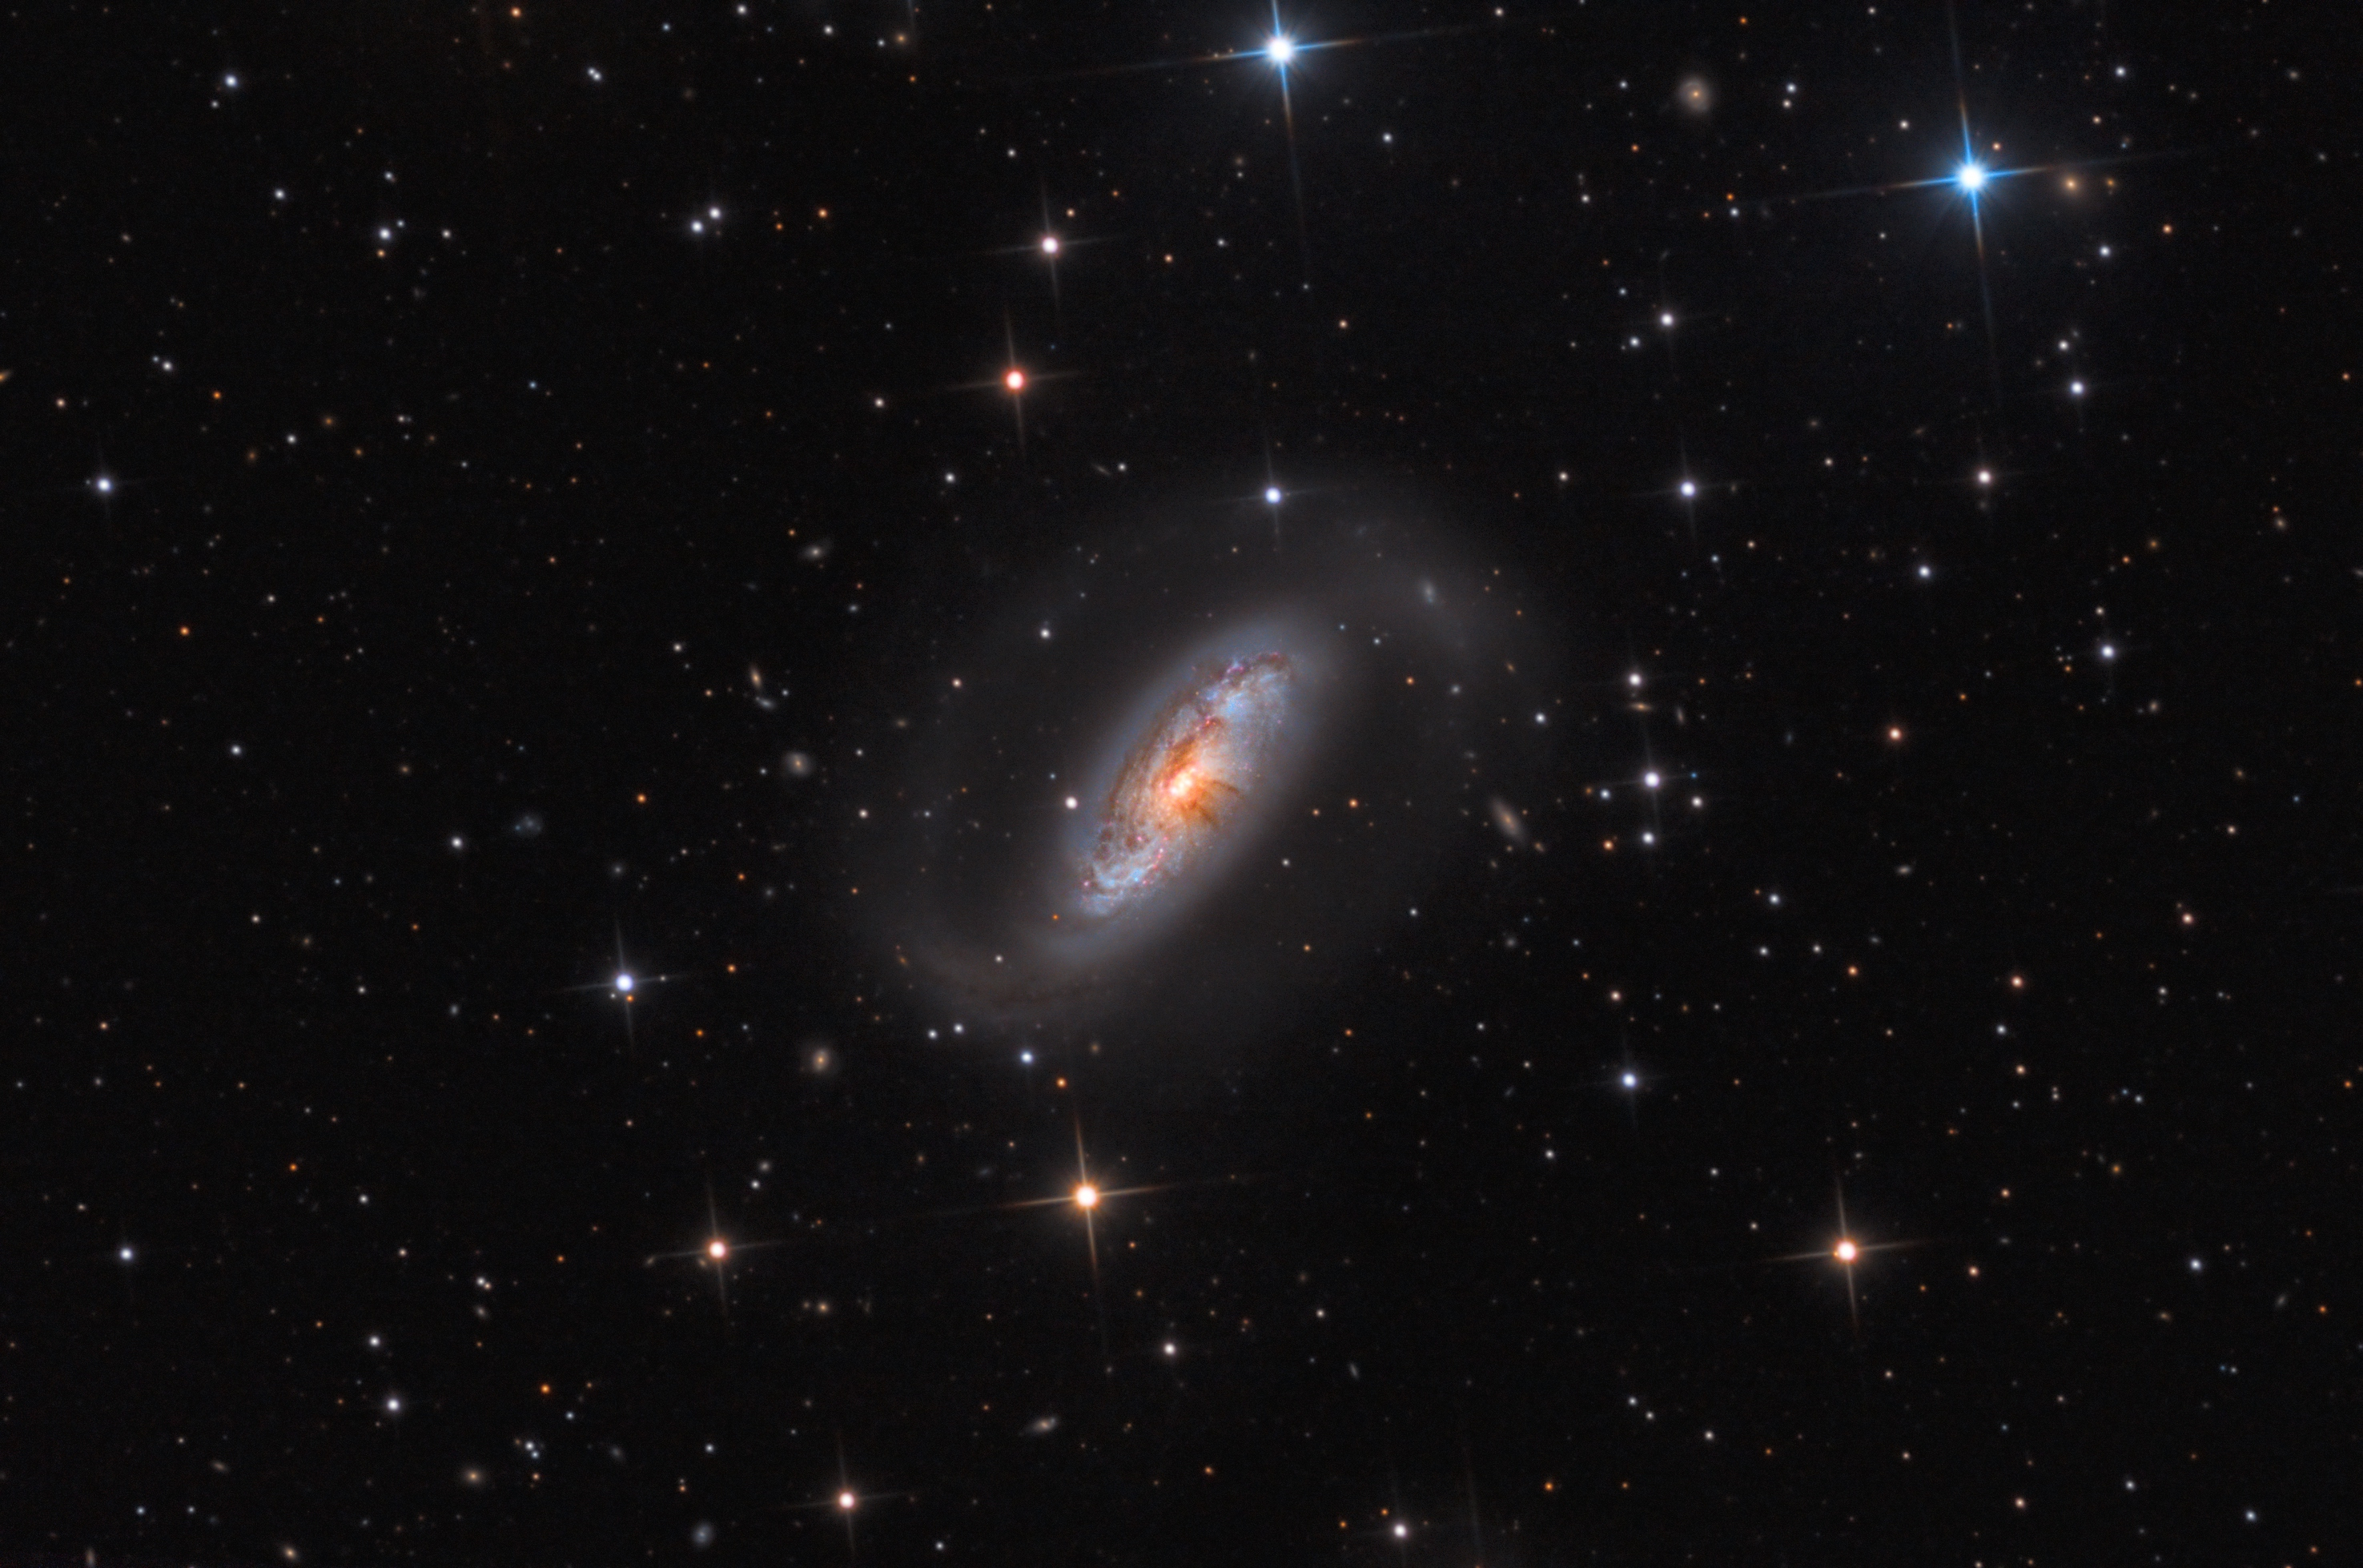 Star factory - NGC 1808